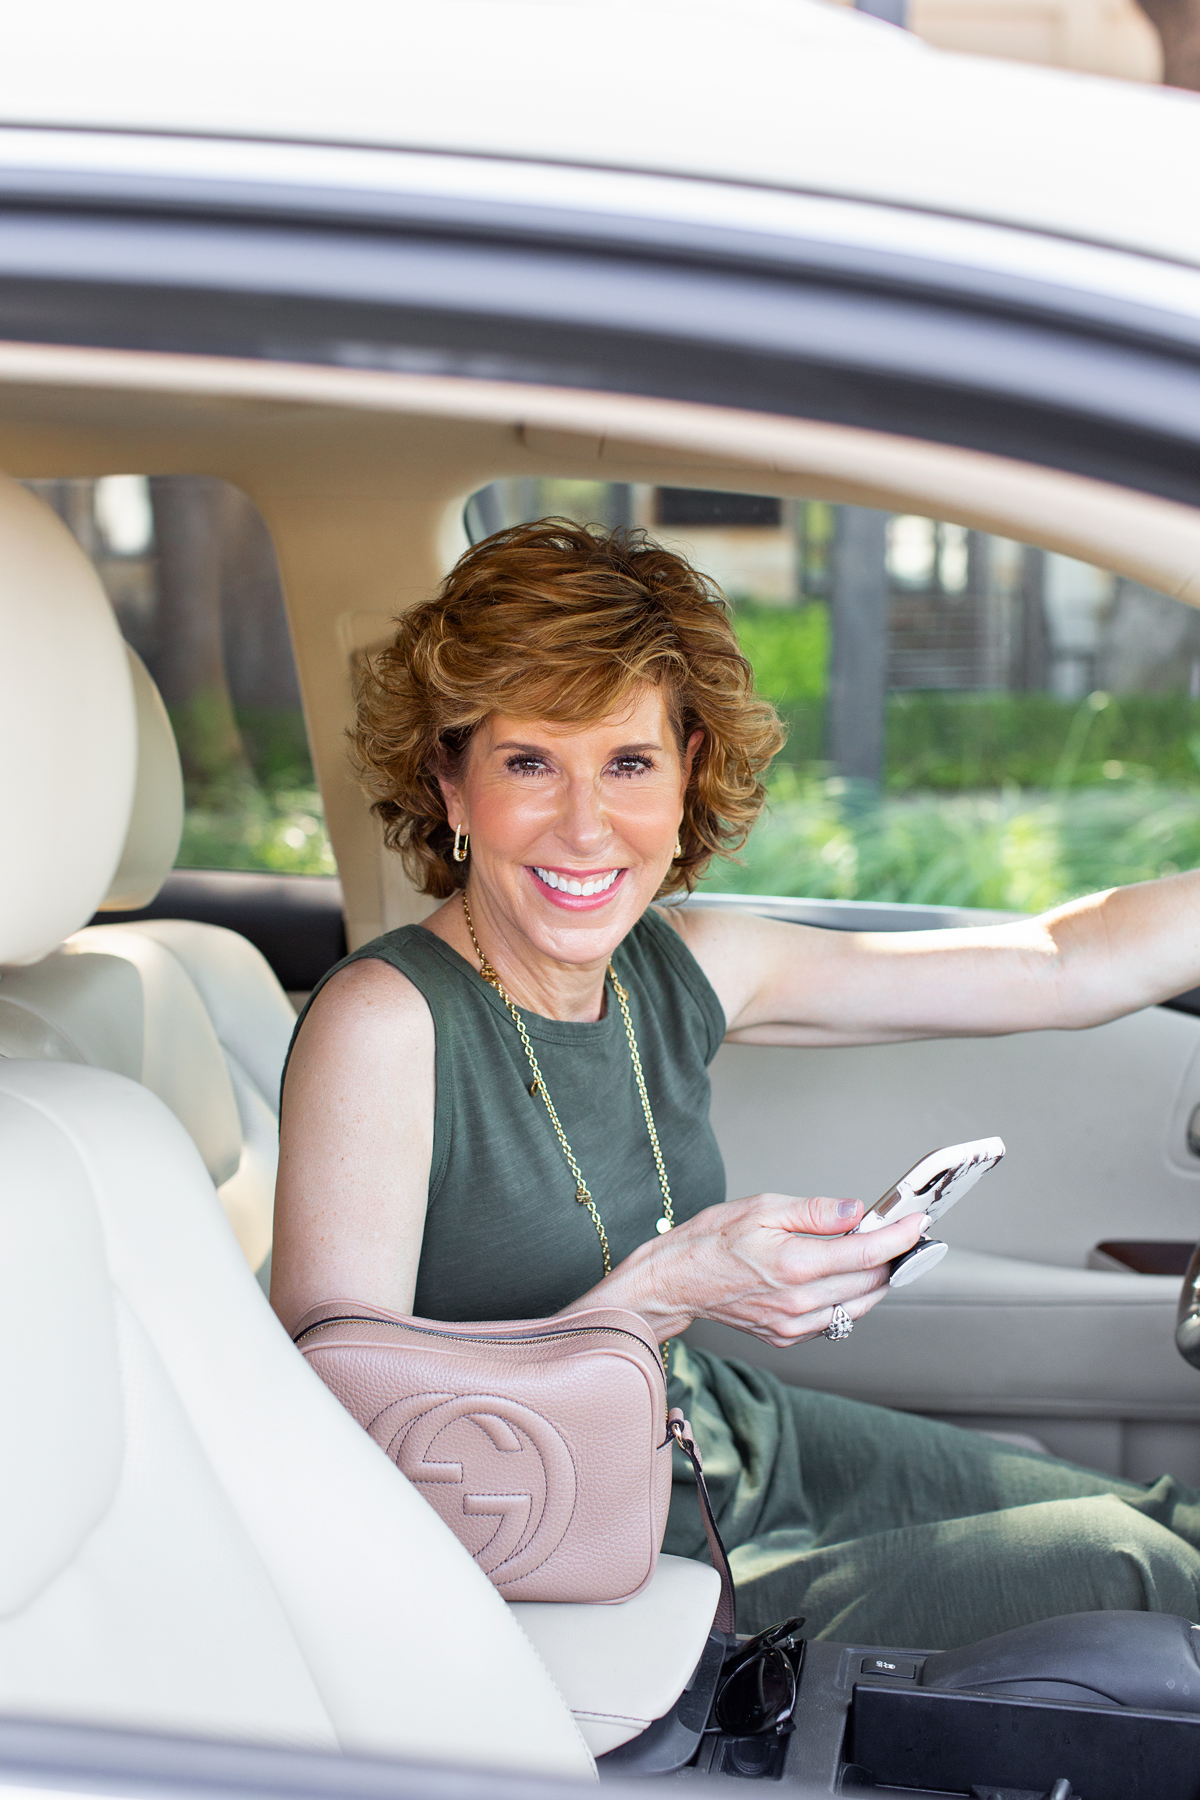 woman in green dress sitting in her car holding her phone looking at camera